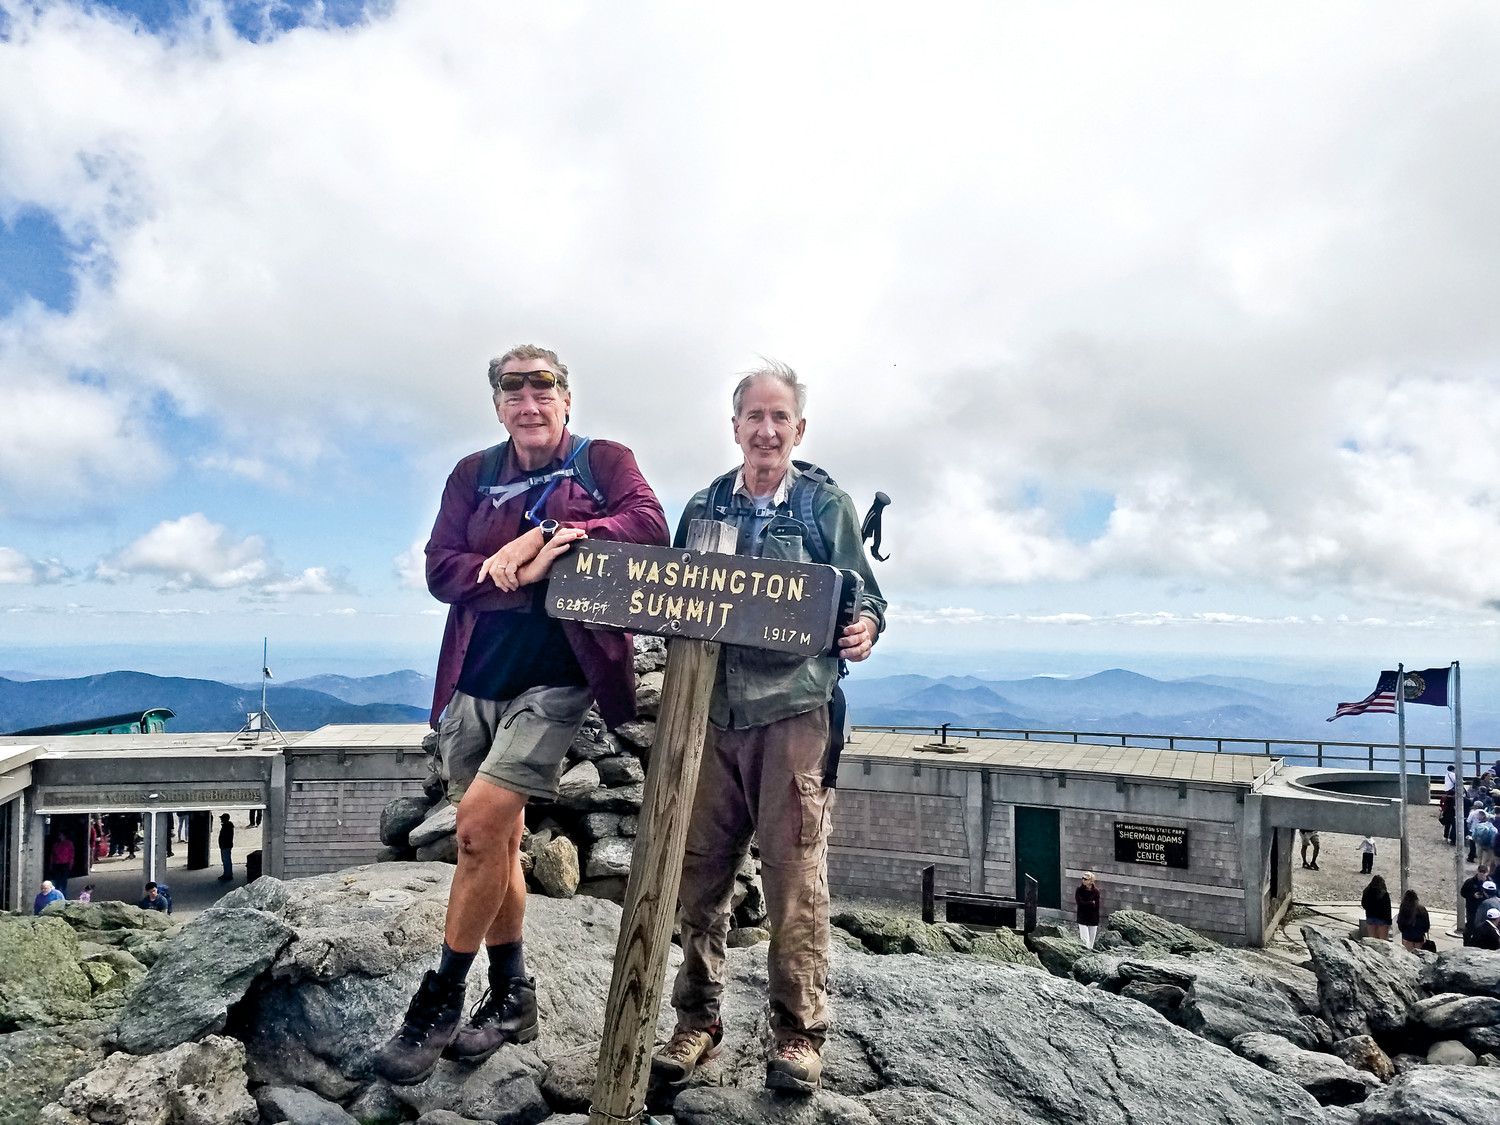 John Fellin, left, and his good friend Lee Hymowitz. Fellin has been scaling mountains to raise money for leukemia research, and is due to climb 